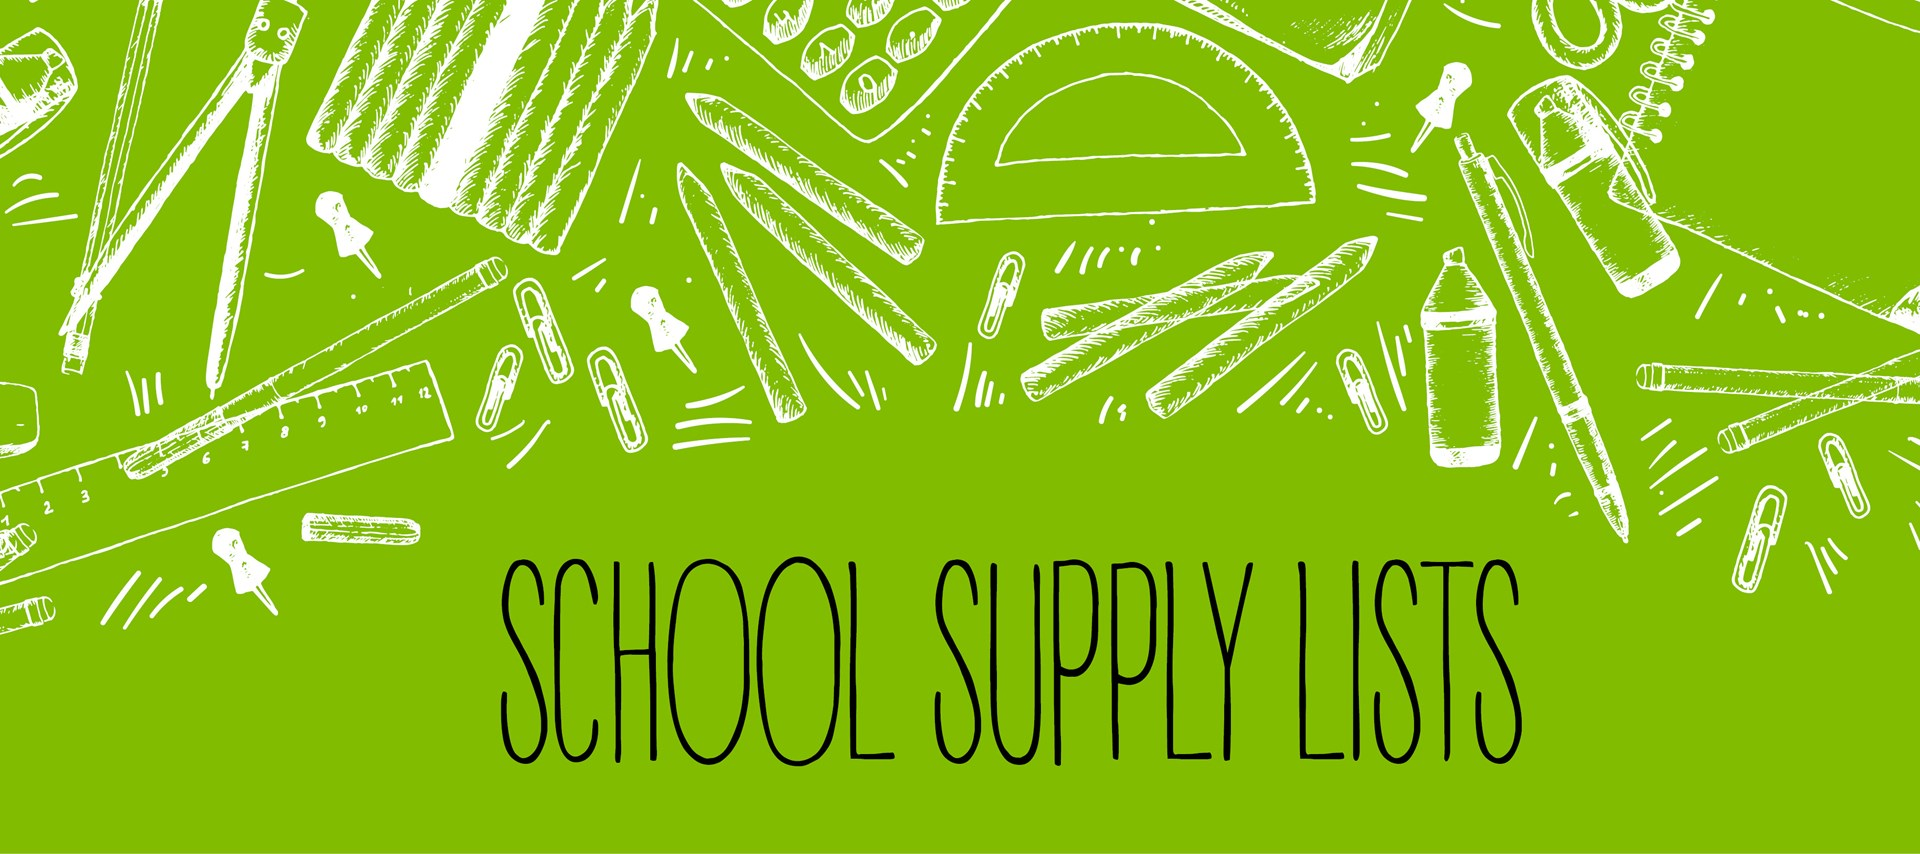 School Supply List for Colette Bourgonje School